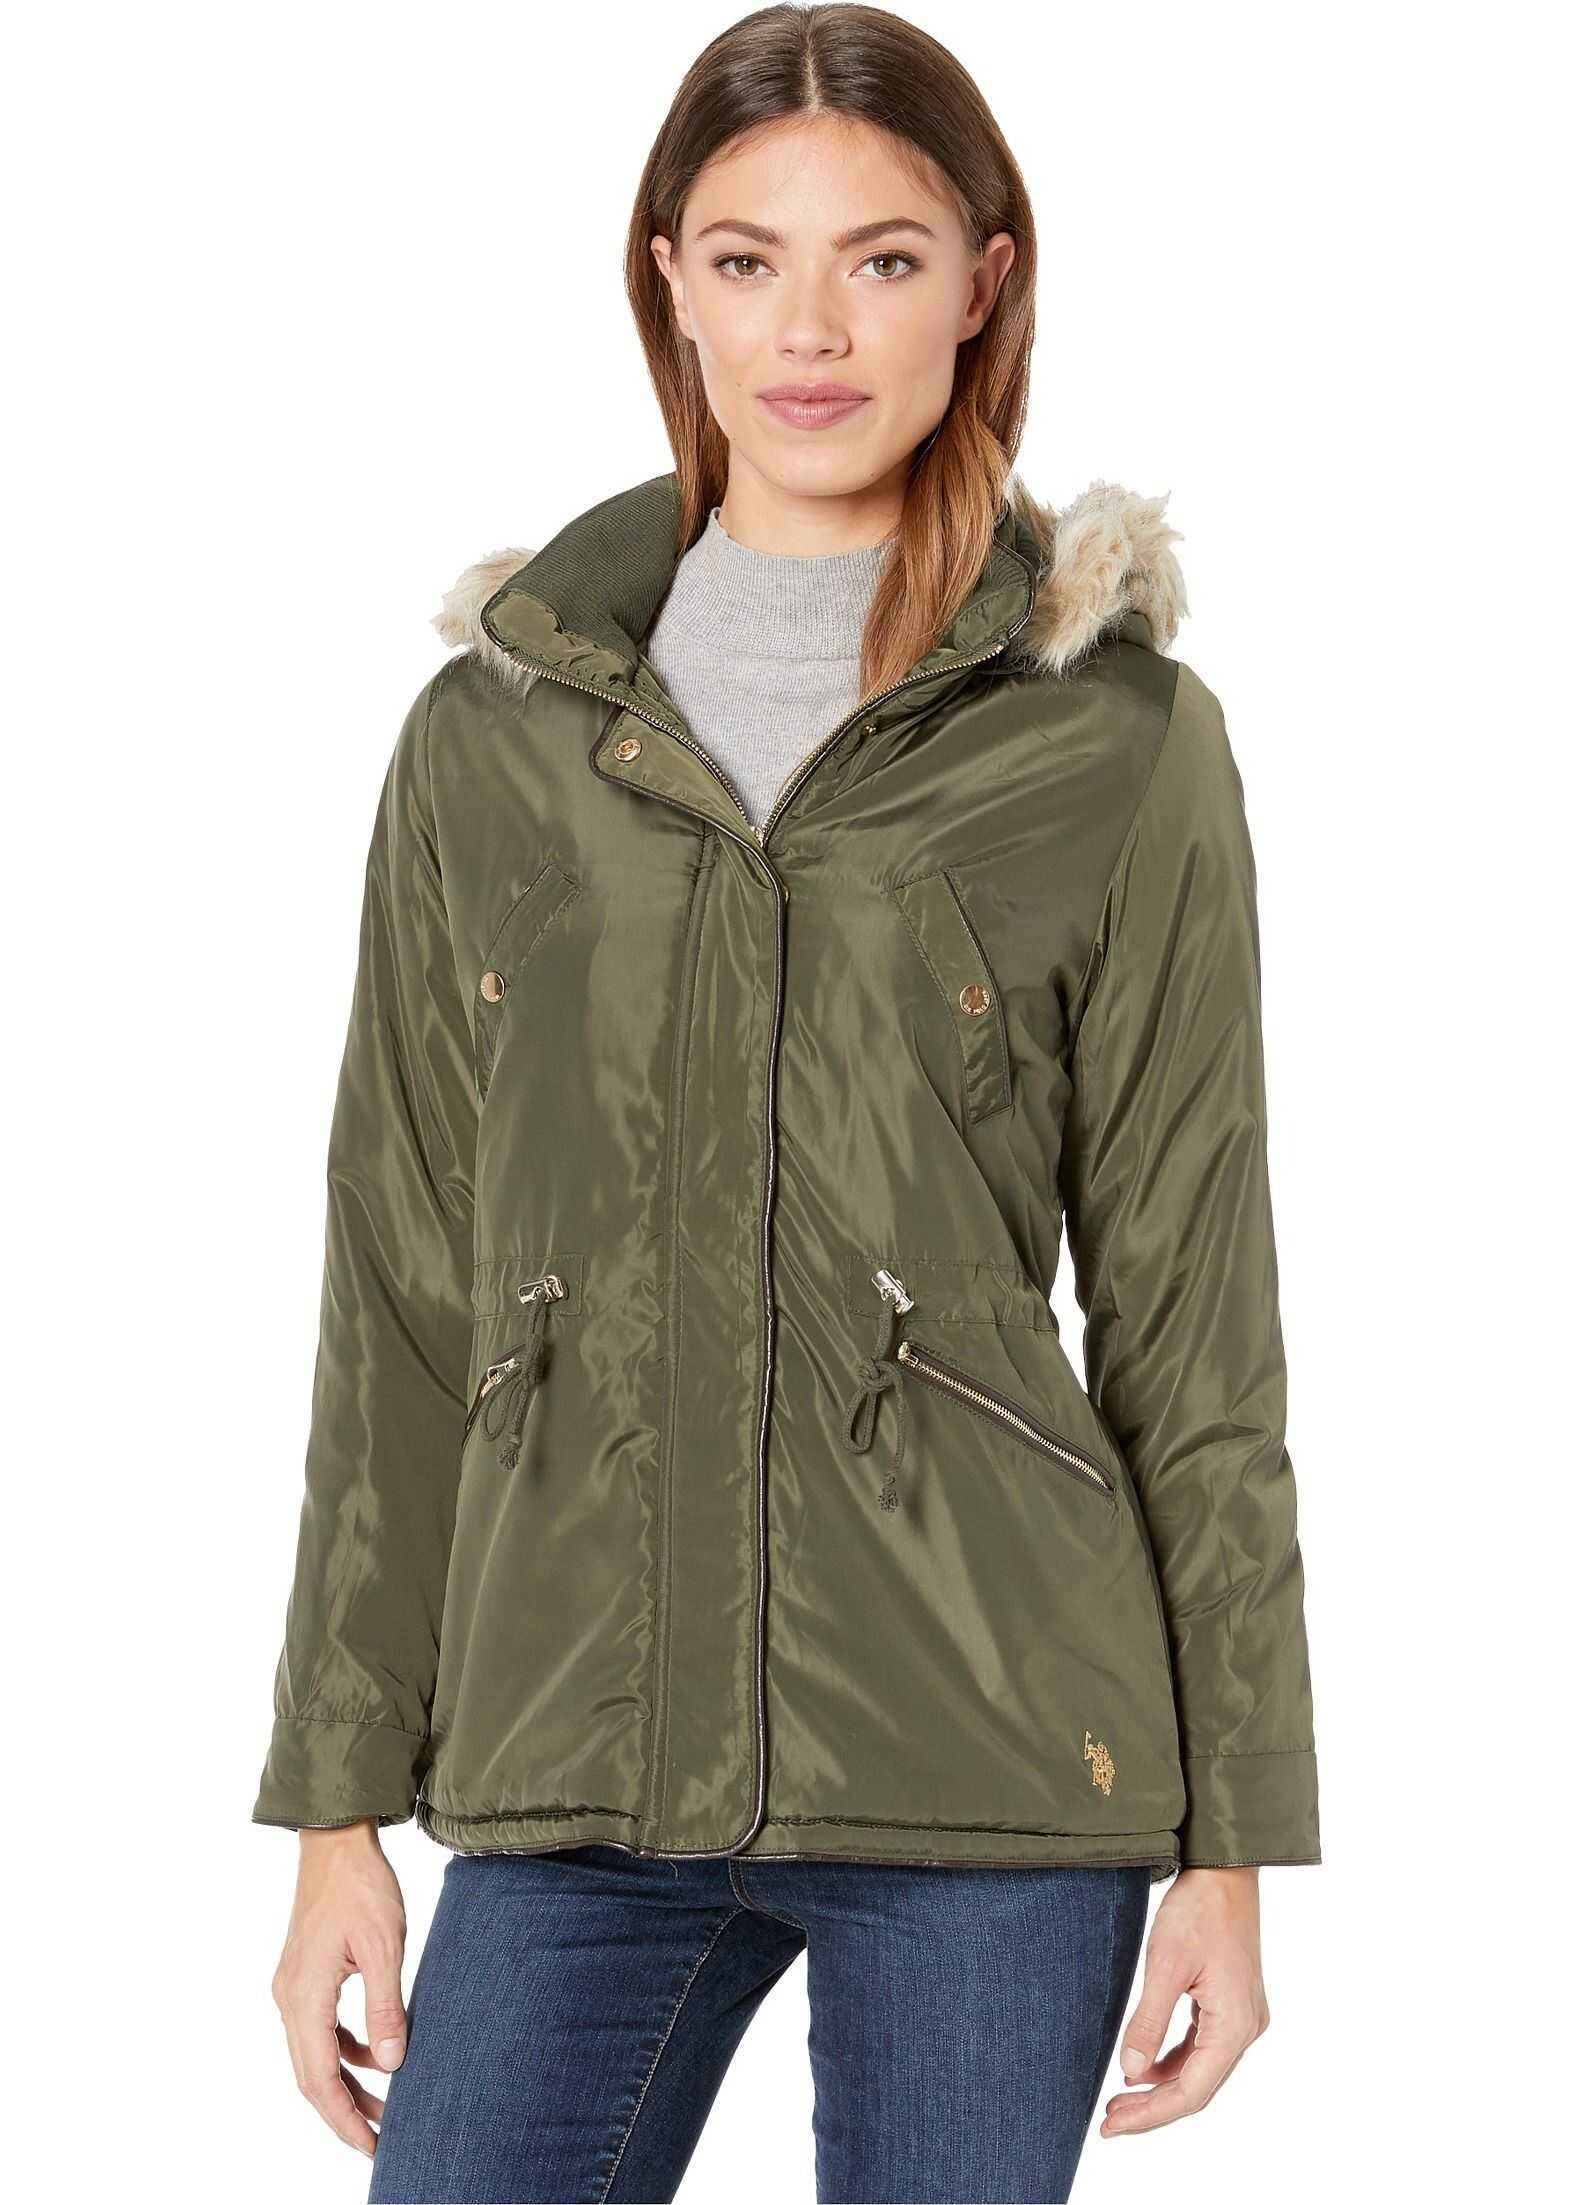 U.S. POLO ASSN. Anorak with Fur Hood Olive